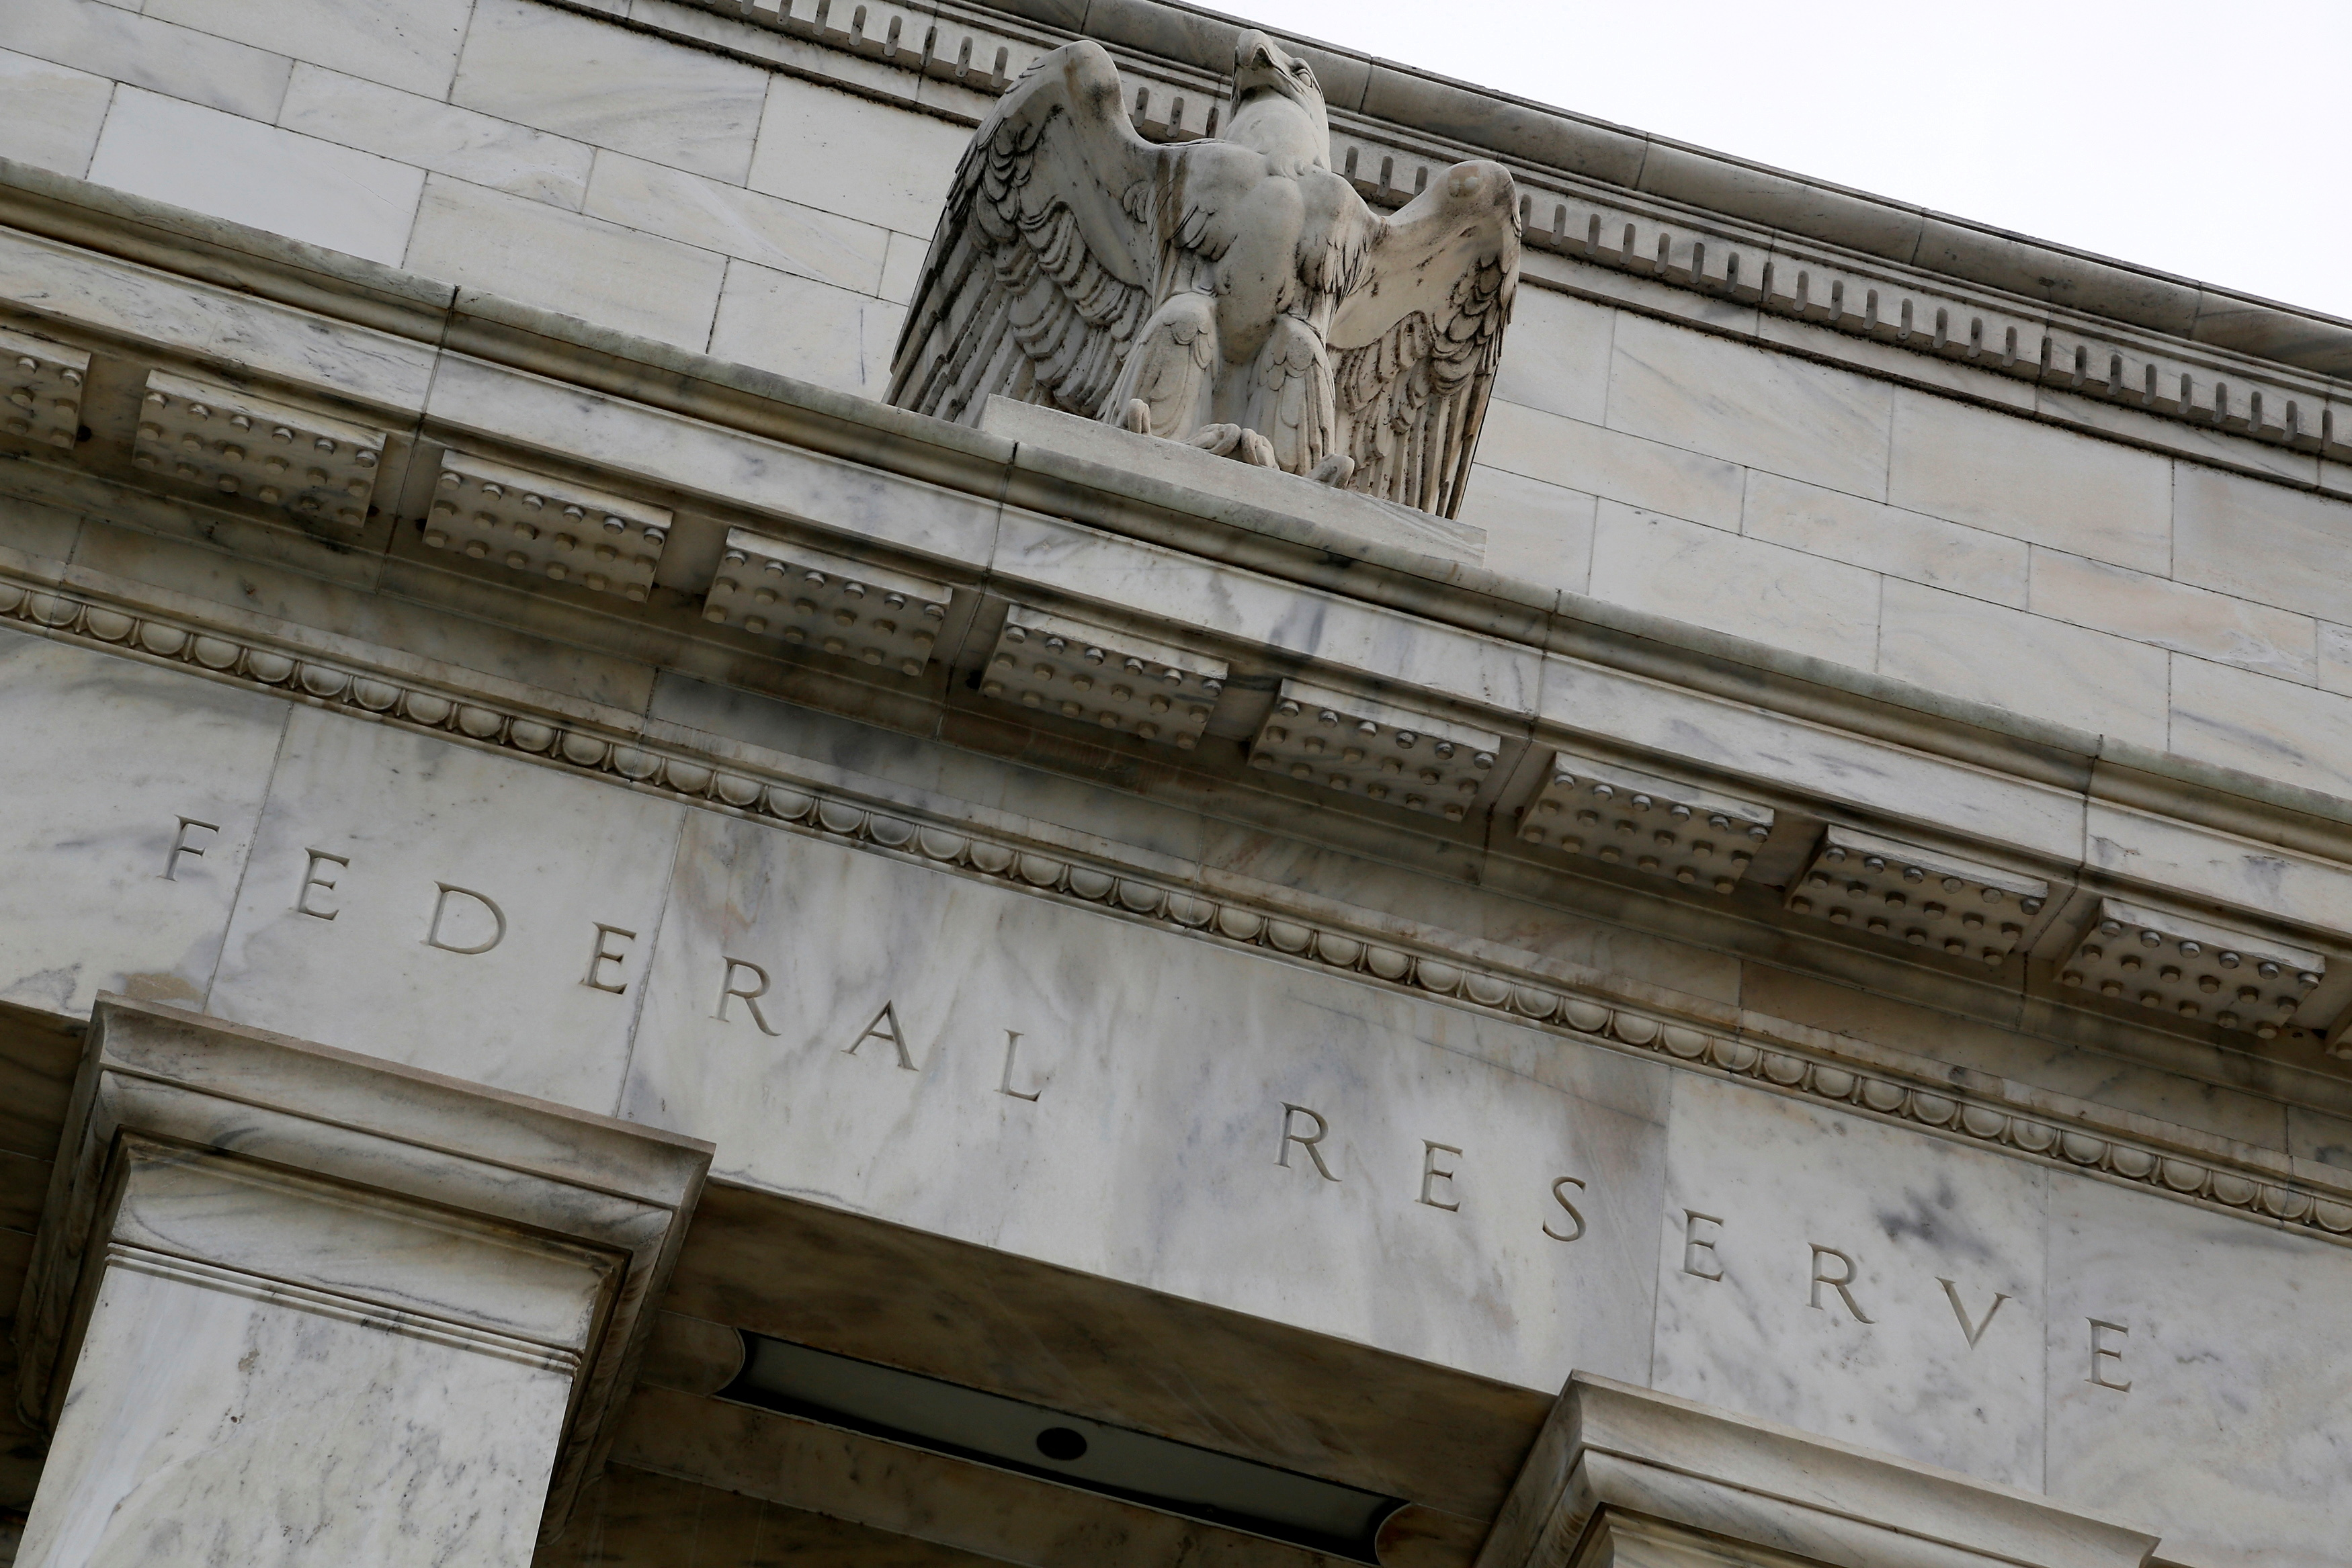 An eagle tops the U.S. Federal Reserve building's facade in Washington, July 31, 2013. REUTERS/Jonathan Ernst/File Photo